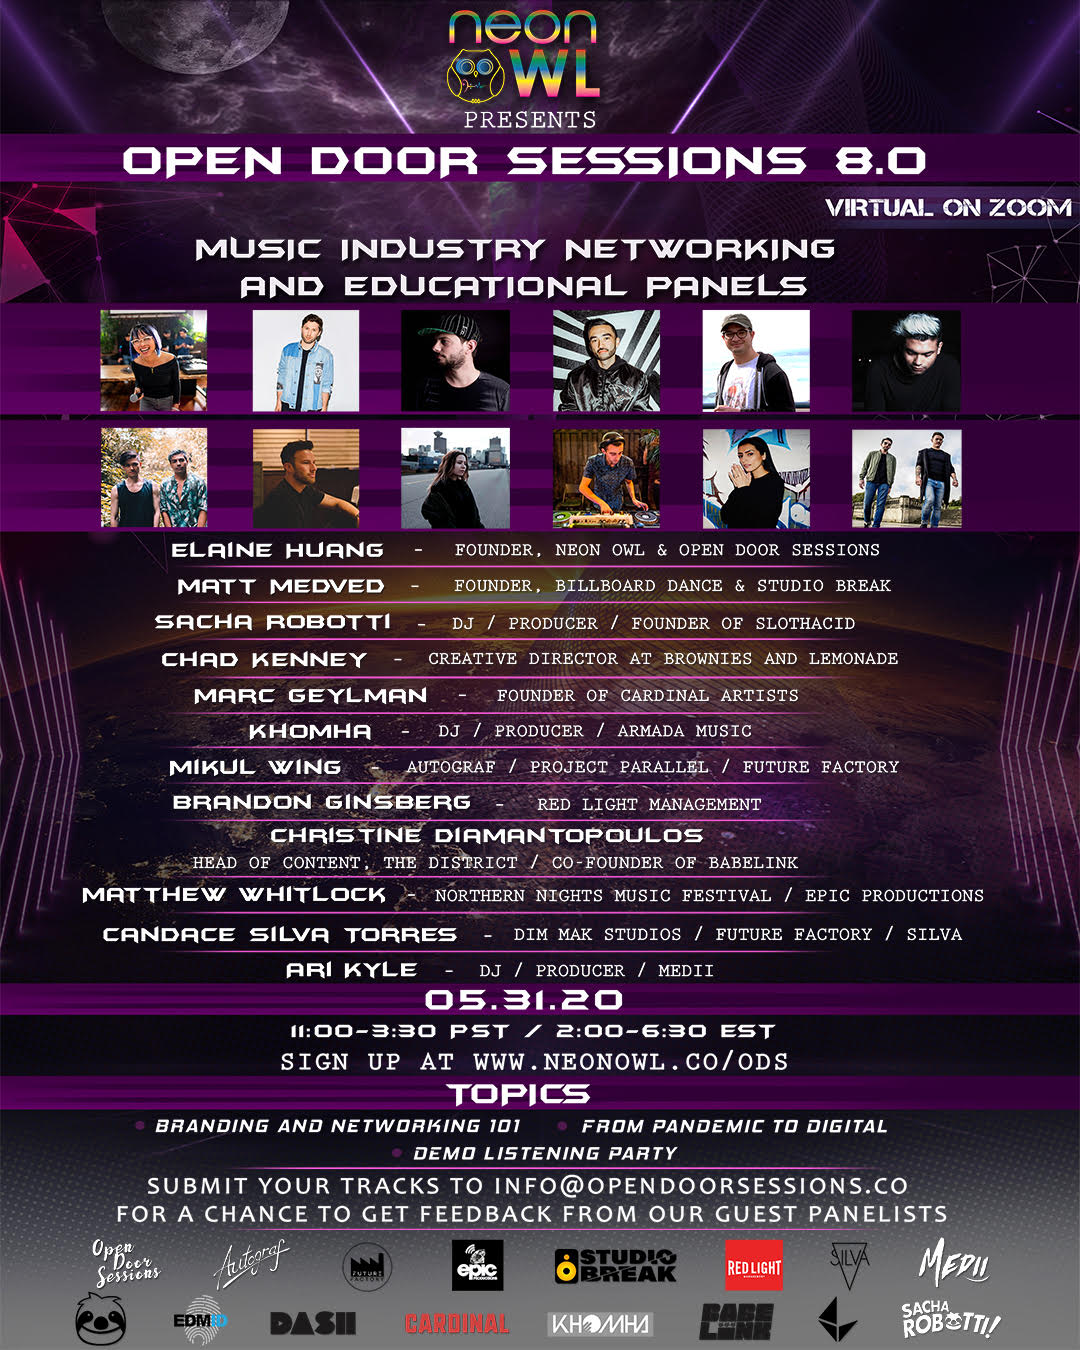 Open Door Sessions 8.0 ODS Round 2 - Neon Owl